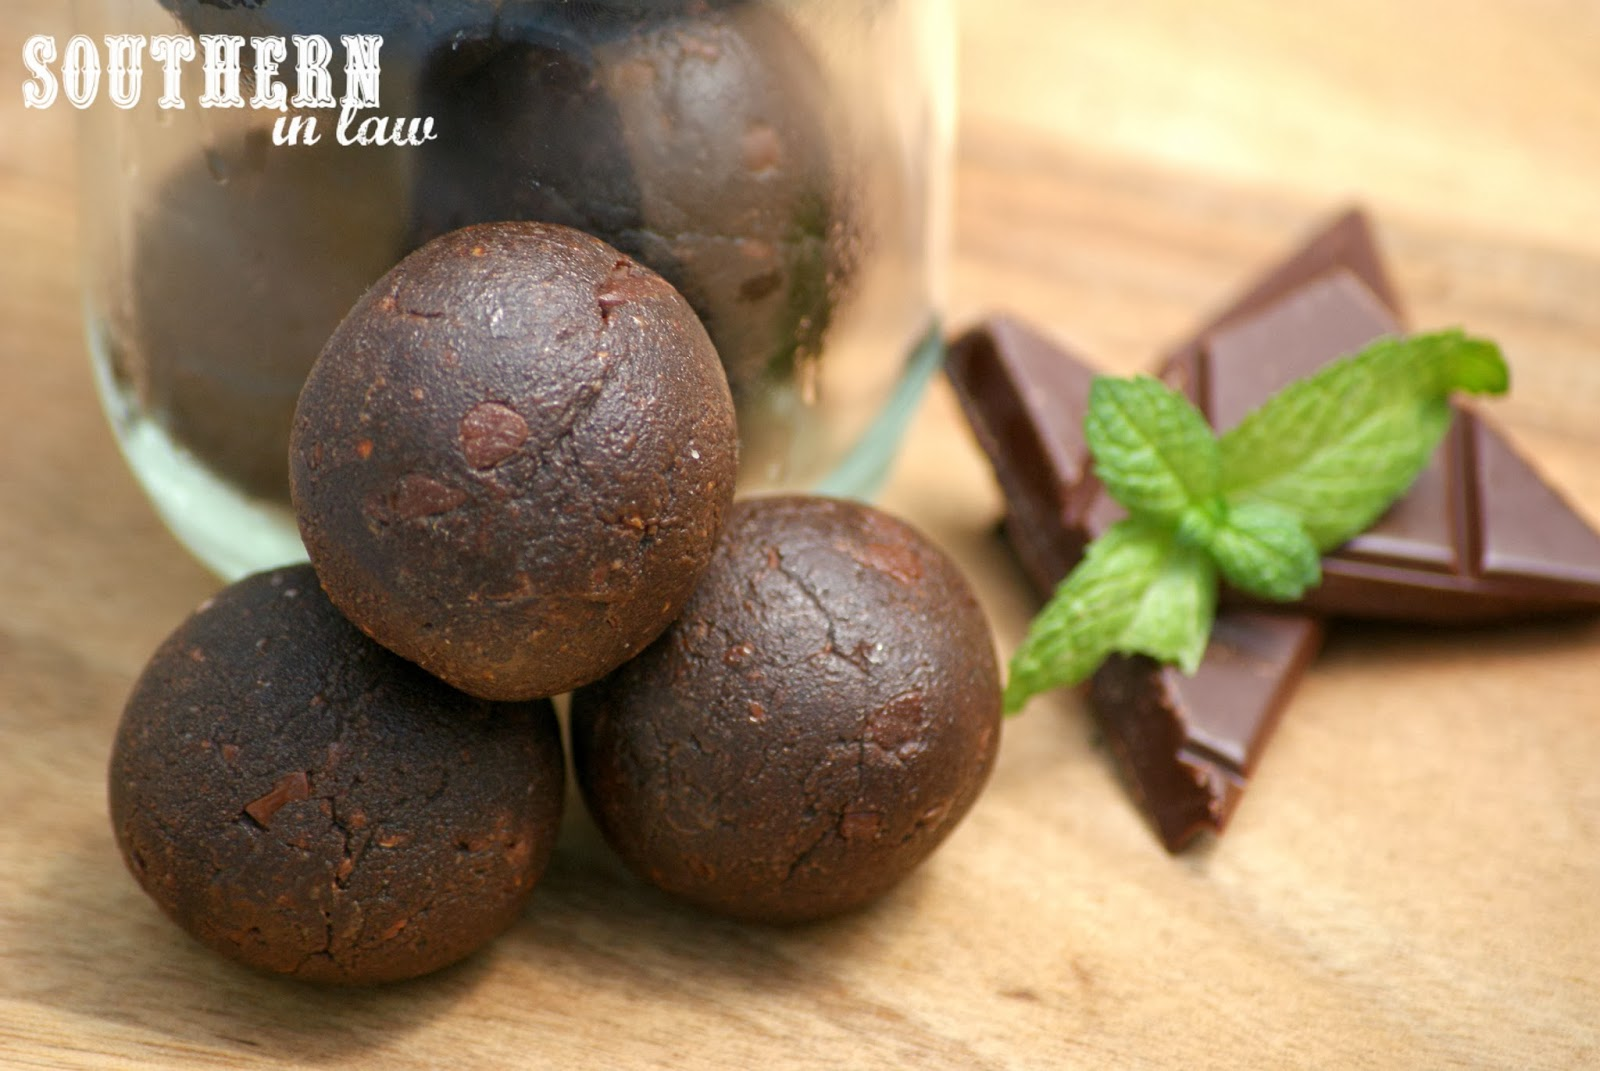 Mint Chocolate Raw Balls Recipe - Gluten Free, Healthy, Low Fat, Paleo, Clean Eating Friendly, Grain Free, Peanut Free, Egg Free, Vegan